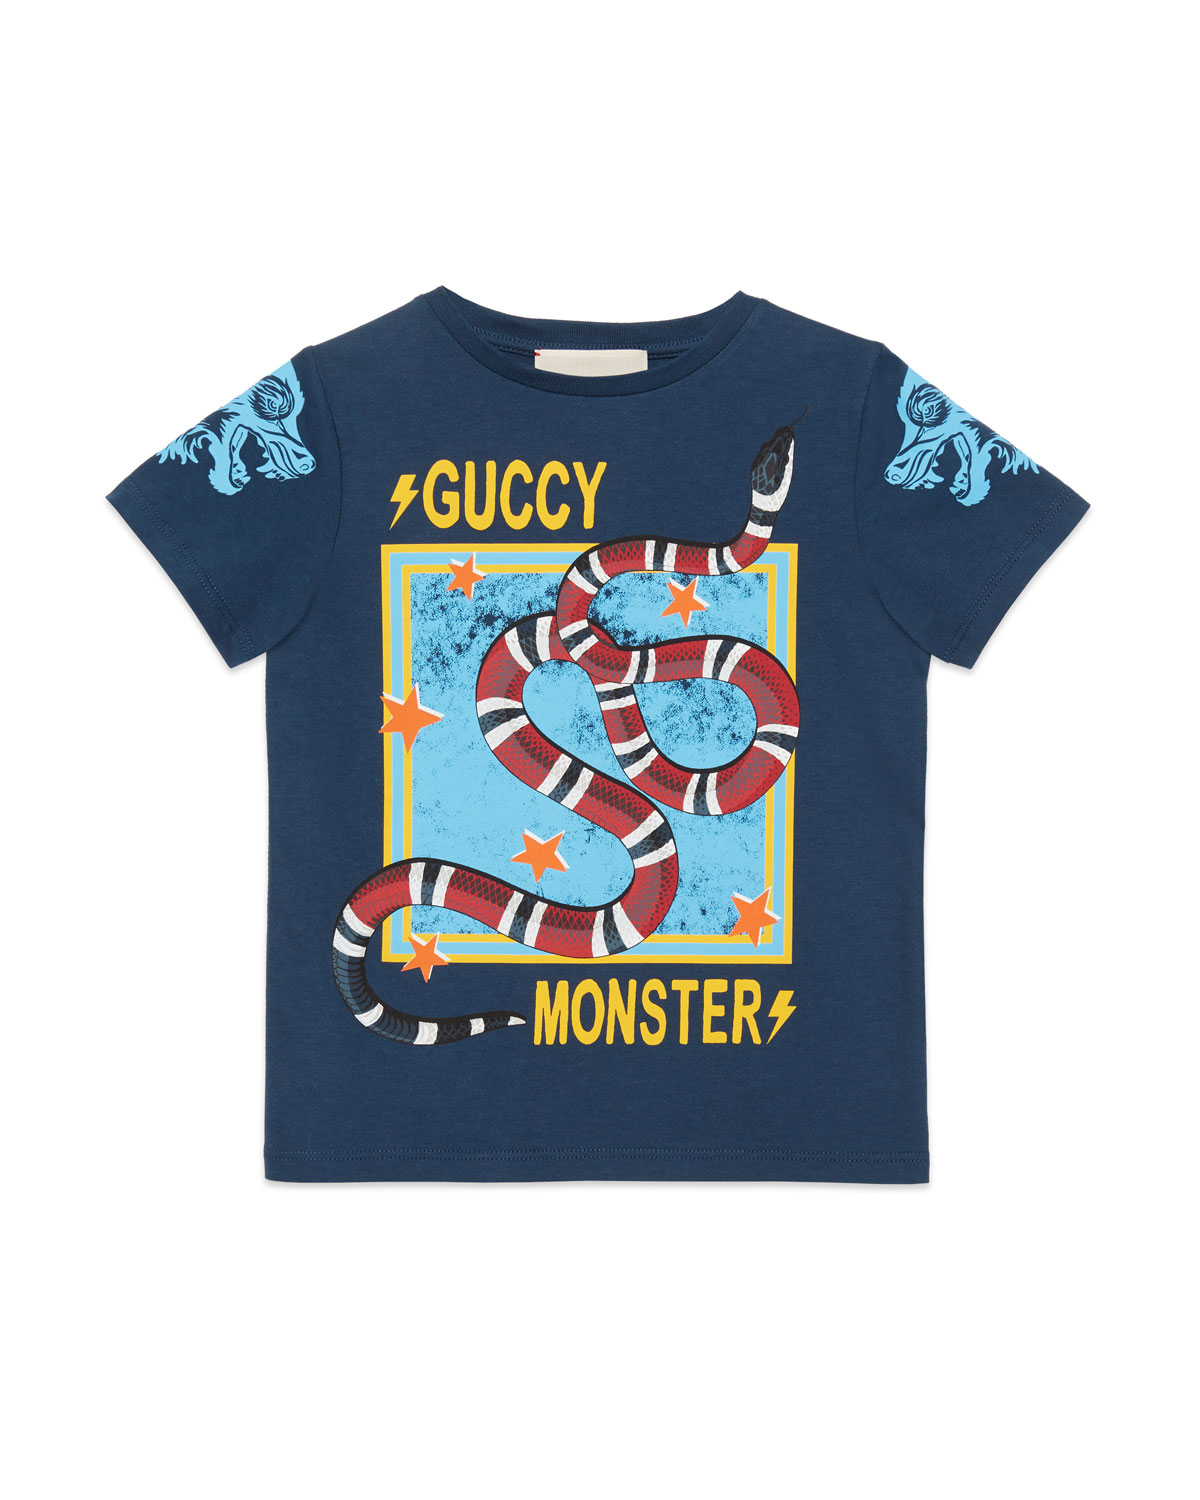 821e4b133d80 Gucci Guccy Monster   Kingsnake T-Shirt